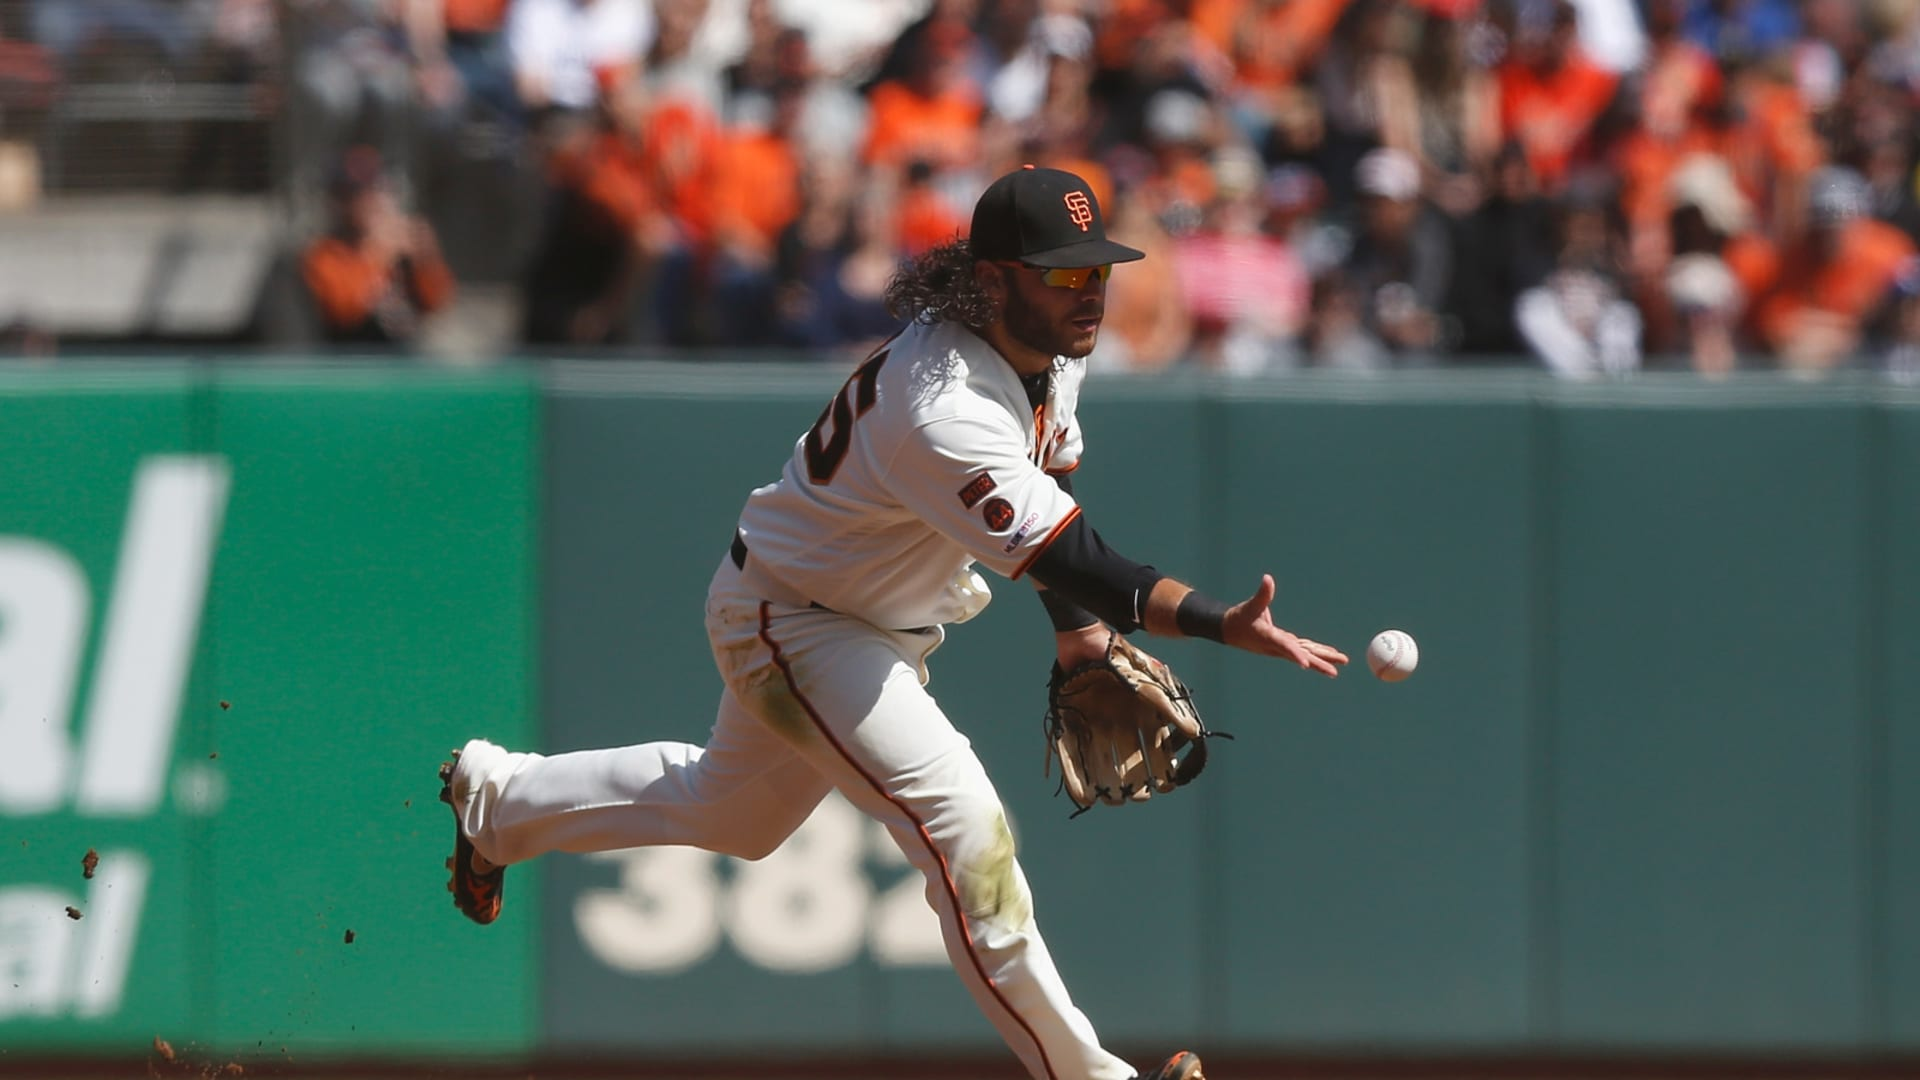 2020 Giants season preview: Shortstop Brandon Crawford